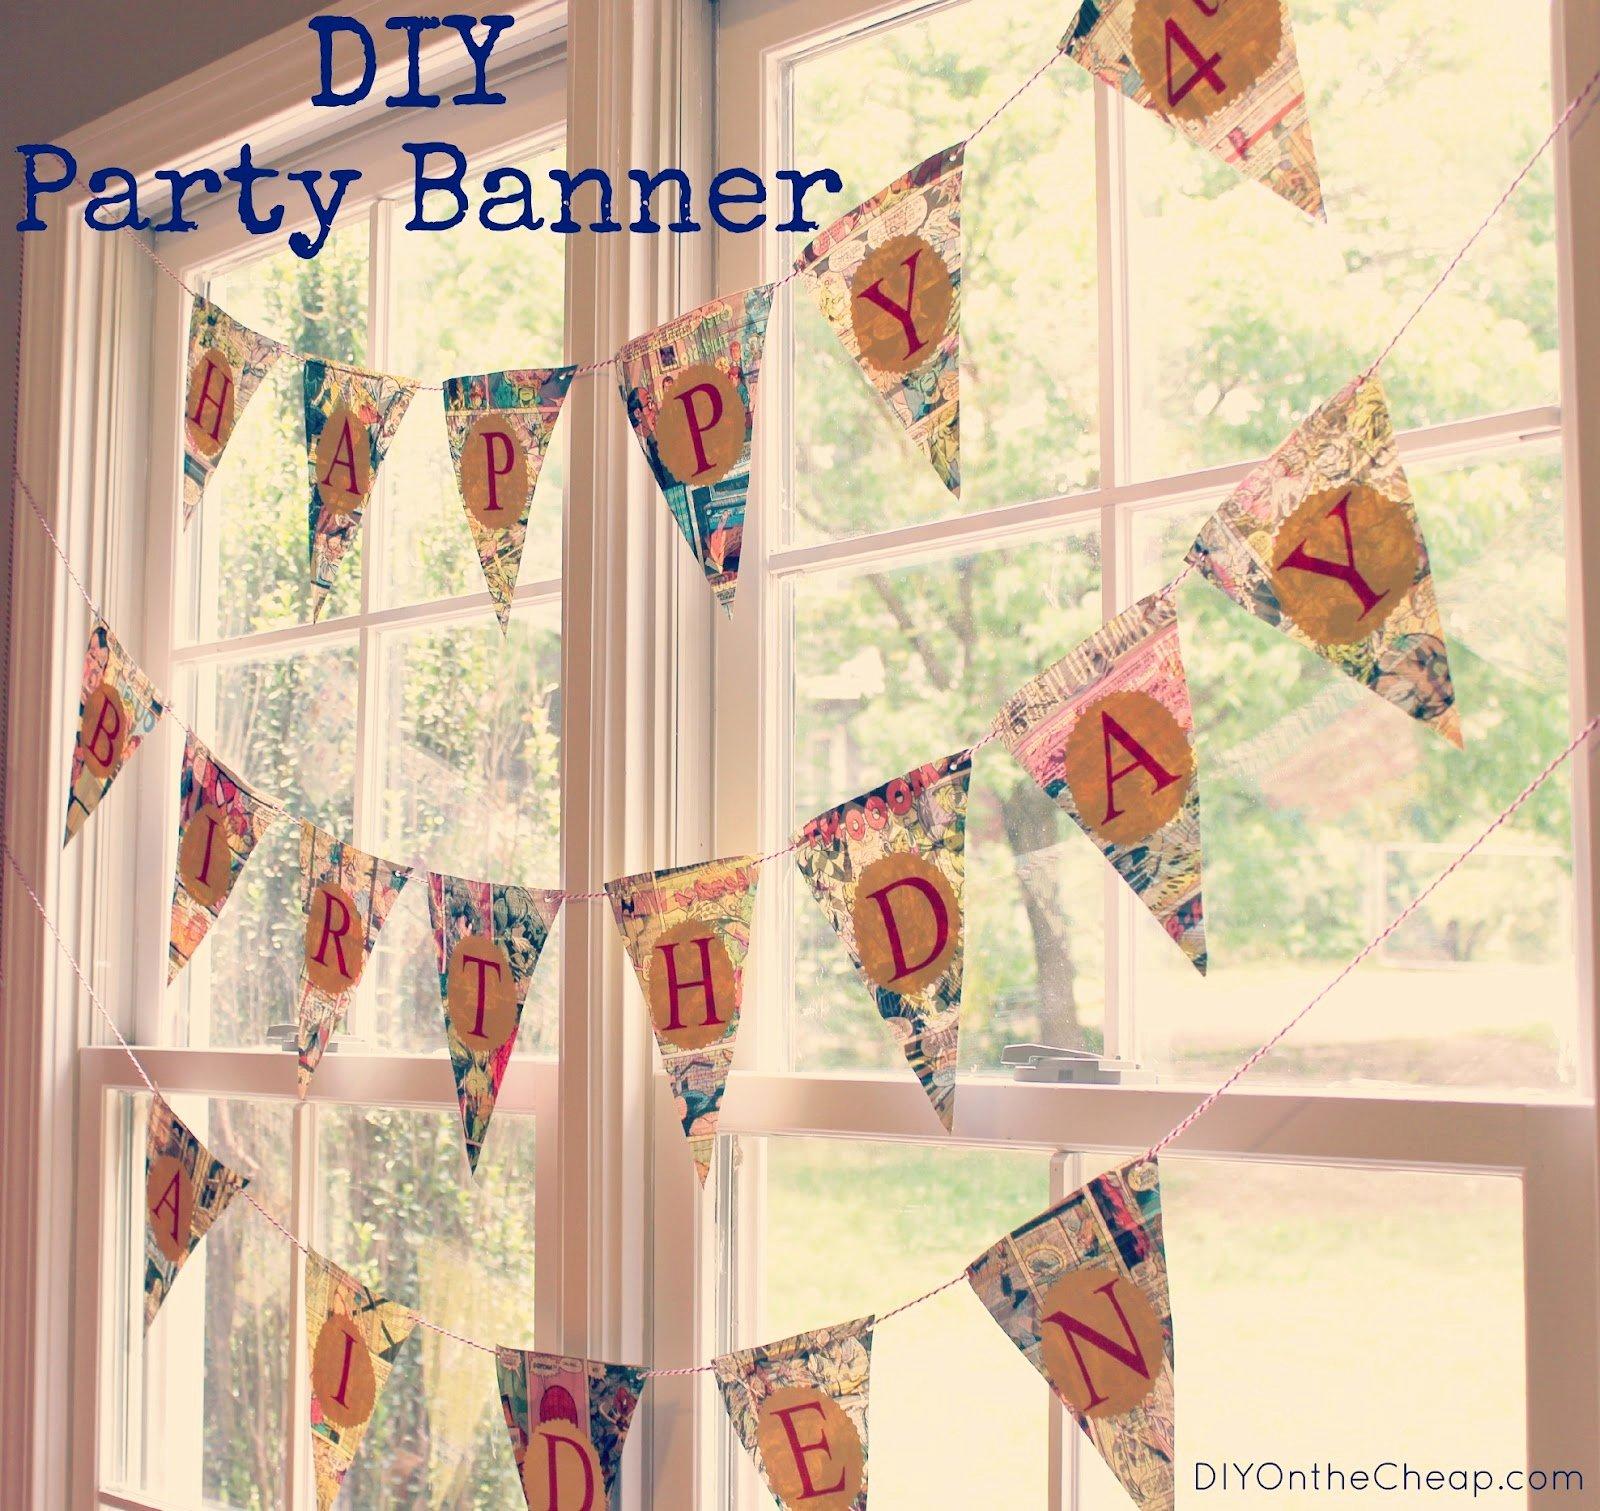 Diy Birthday Banner Template Beautiful Diy Party Banner Erin Spain